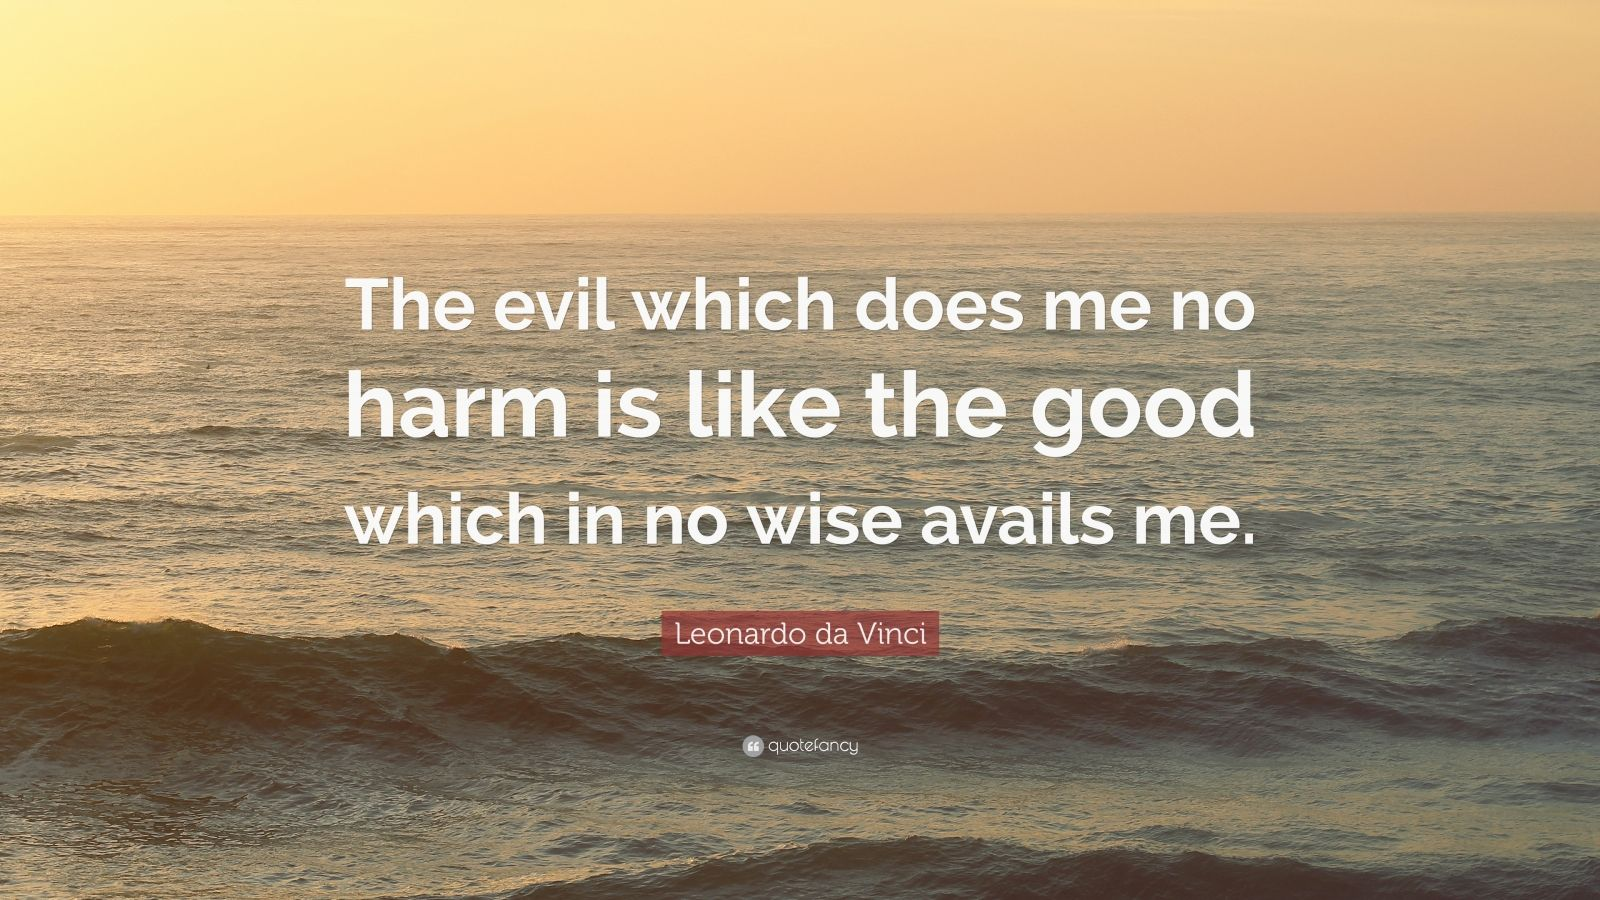 """Leonardo da Vinci Quote: """"The evil which does me no harm is like the good which in no wise avails me."""""""